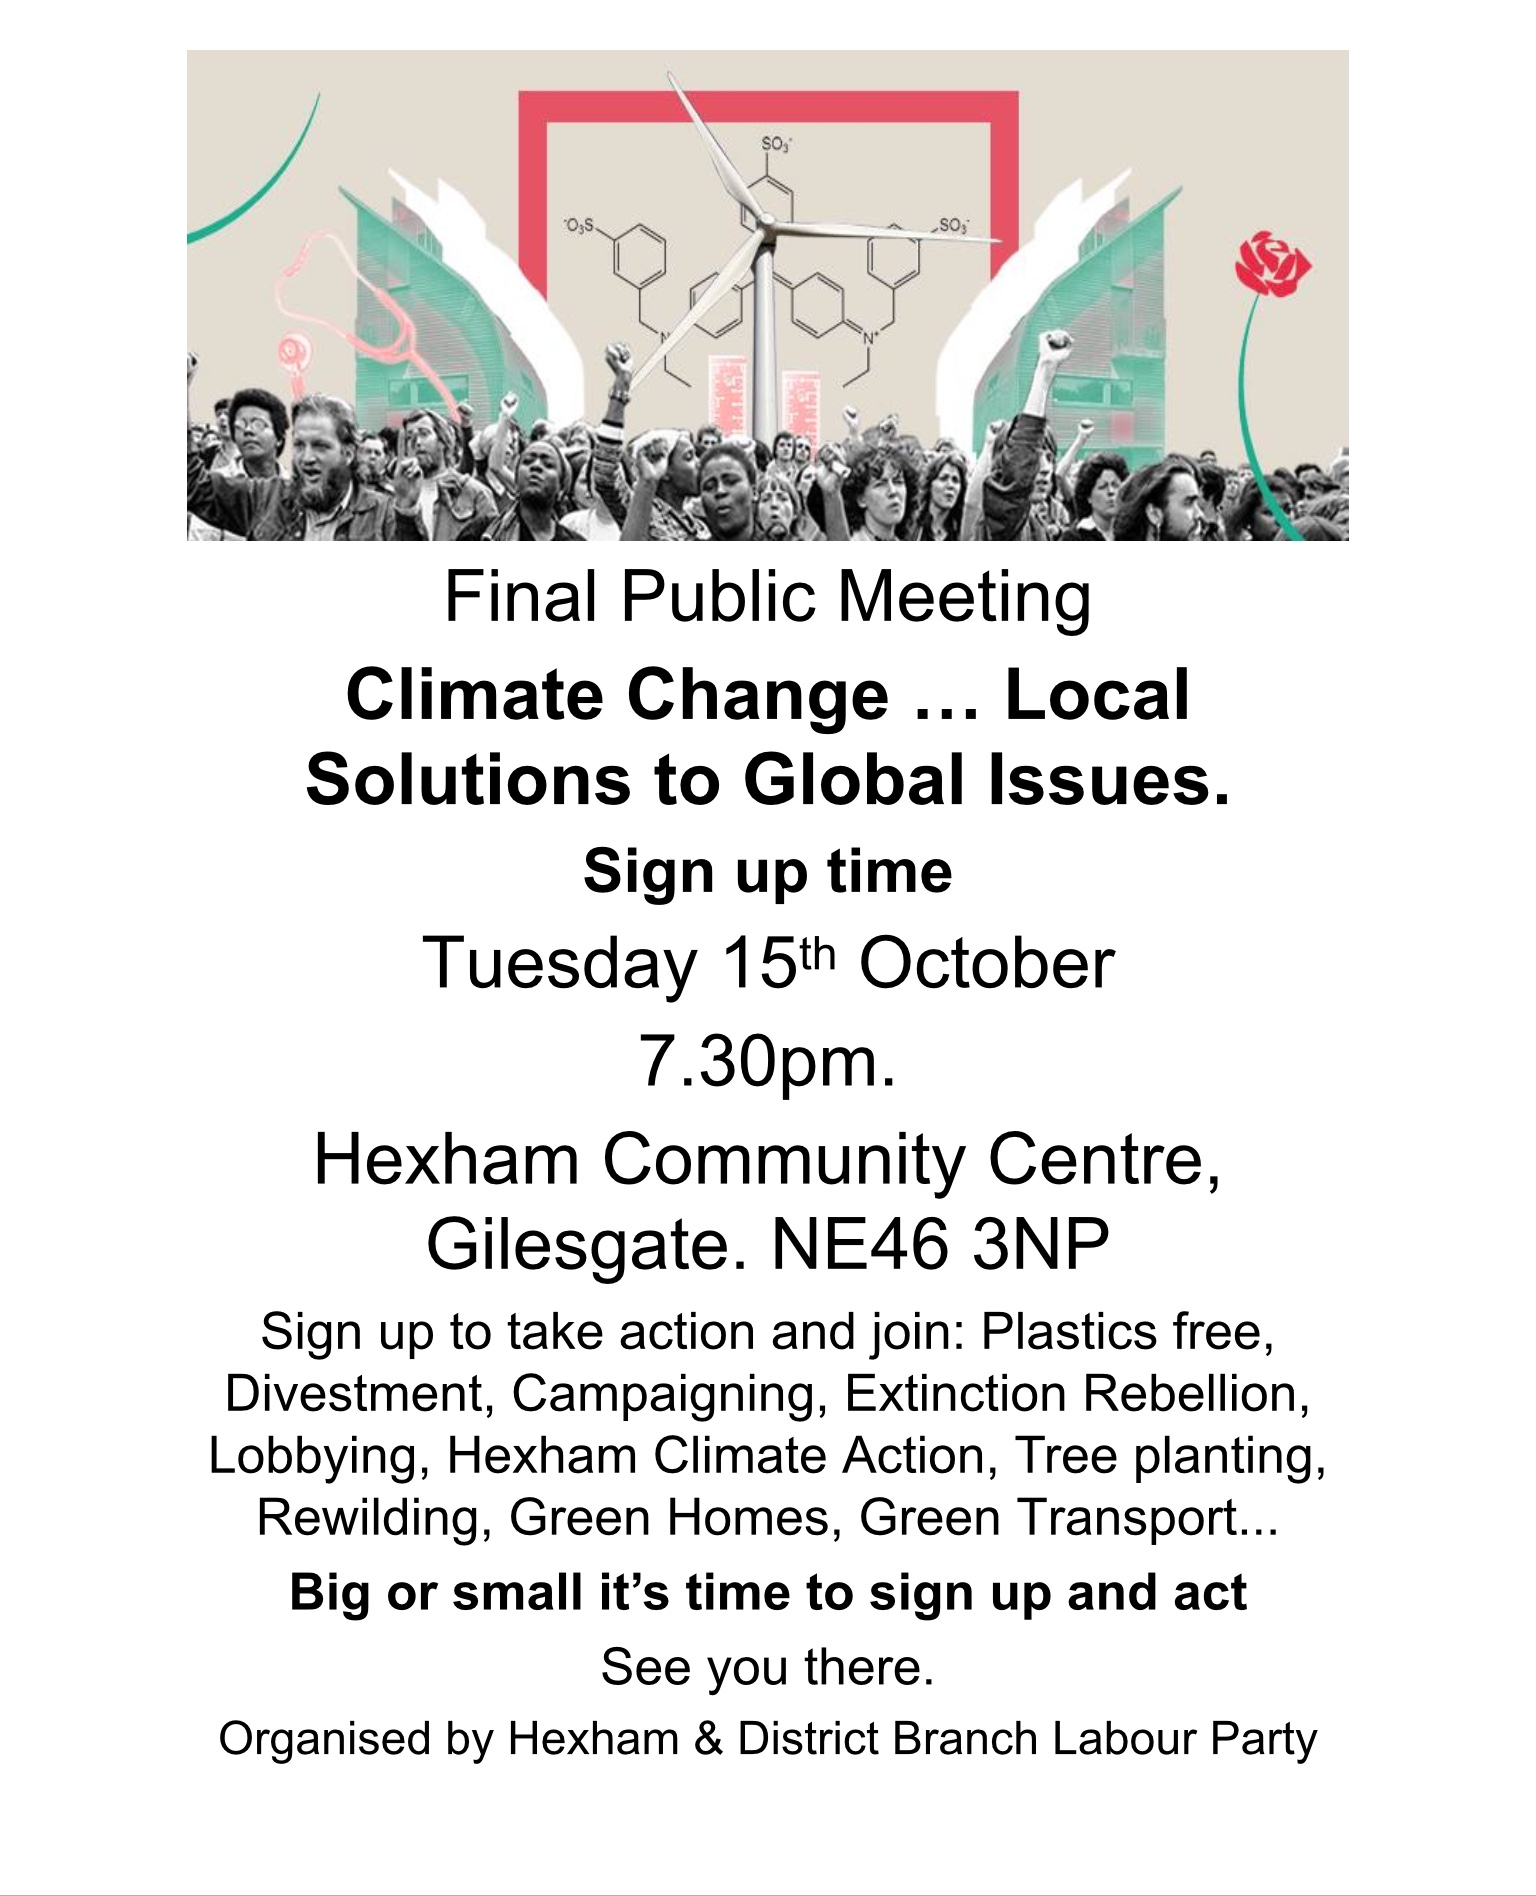 Climate Change Public Meeting